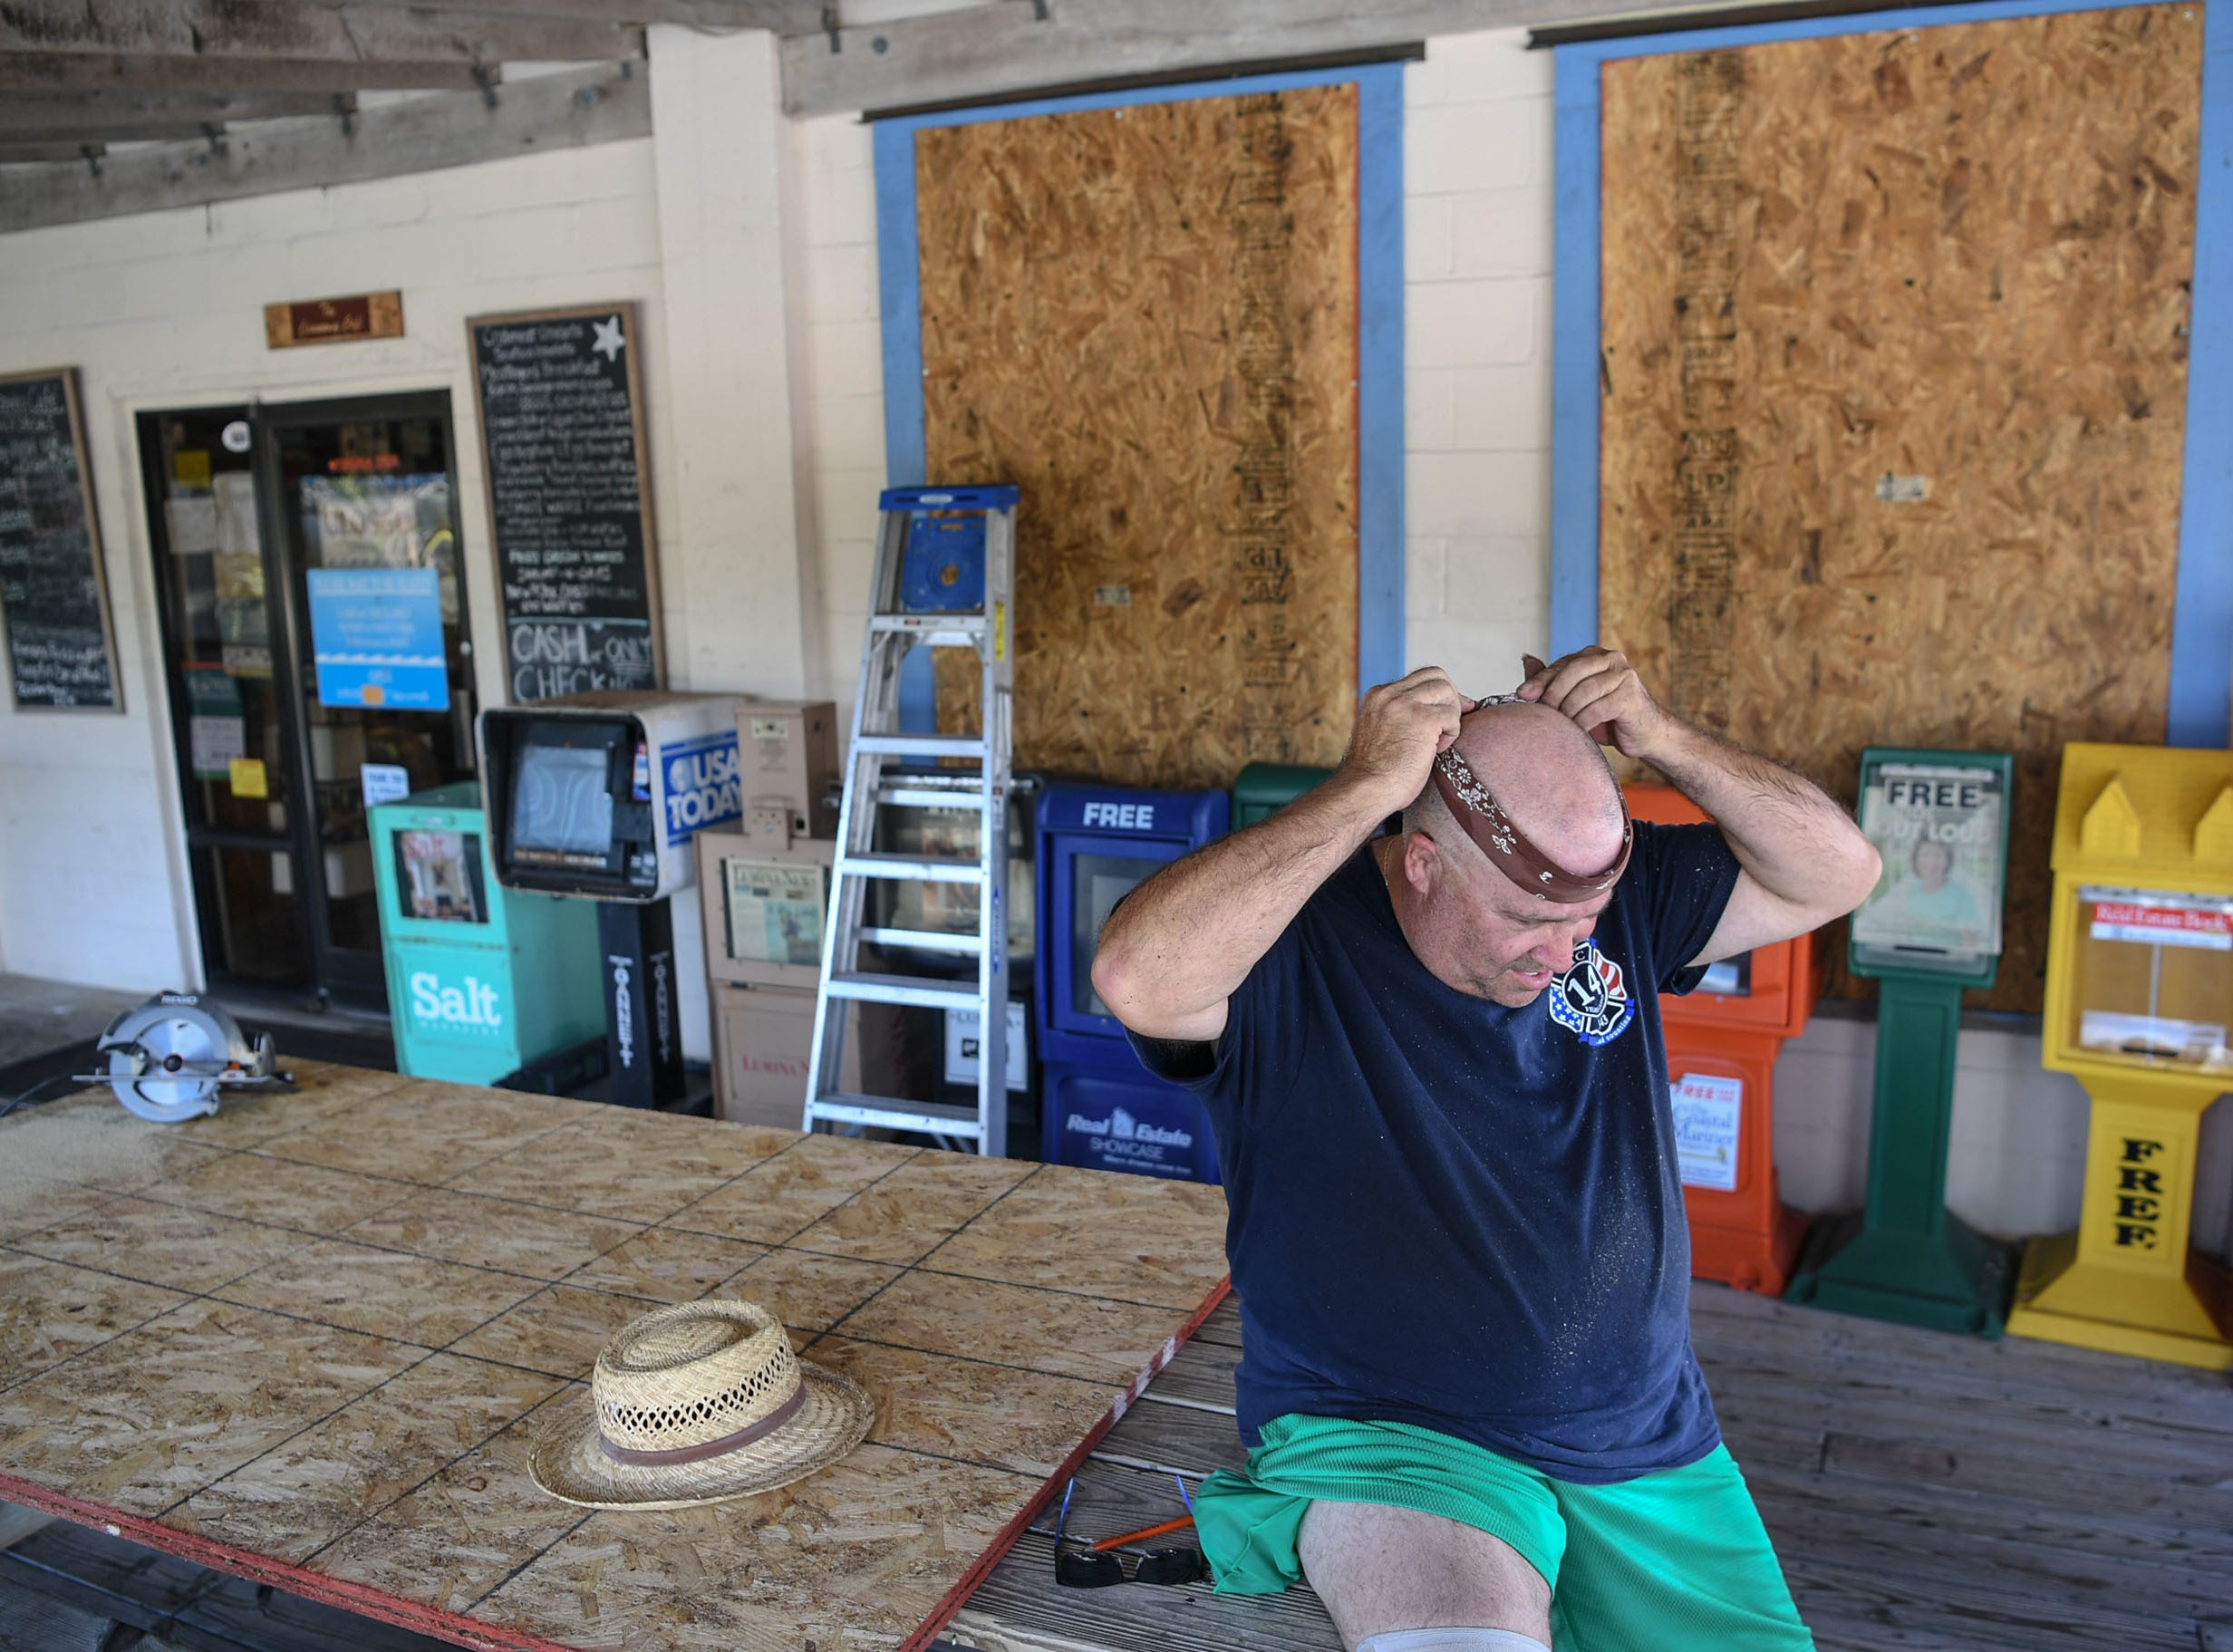 Jon Wright, 63, of Wilmington, North Carolina, puts a bandana on his head before wearing his hat and drilling screws to cover windows with plywood at the Causeway Cafe in Wilmington, North Carolina on Tuesday, September 11, 2018. Hurricane Florence is expected to arrive in Wilmington, North Carolina late Thursday night through Friday morning. (Ken Ruinard / Greenville News / Gannett USA Today Network / 2018 )